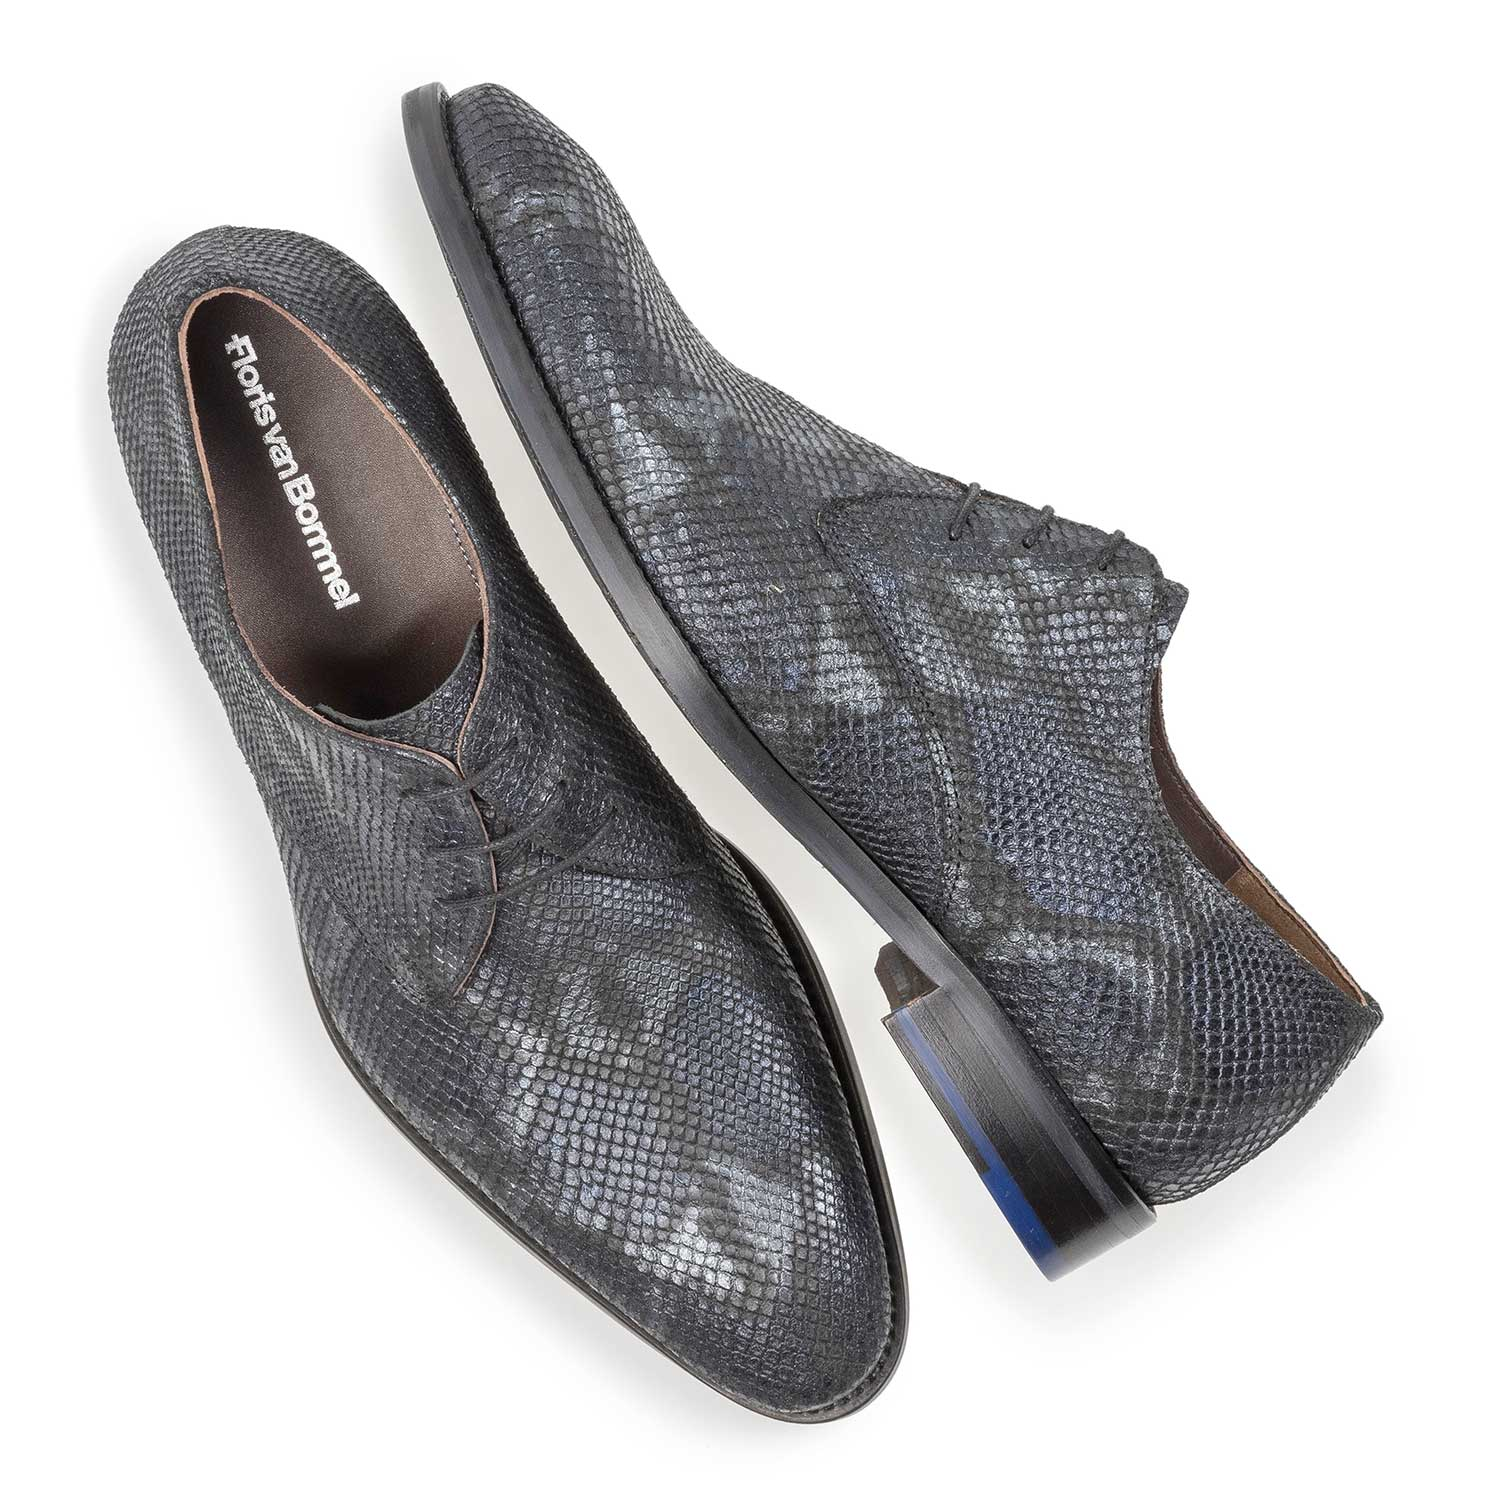 18124/01 - Blue leather lace shoe with snake print